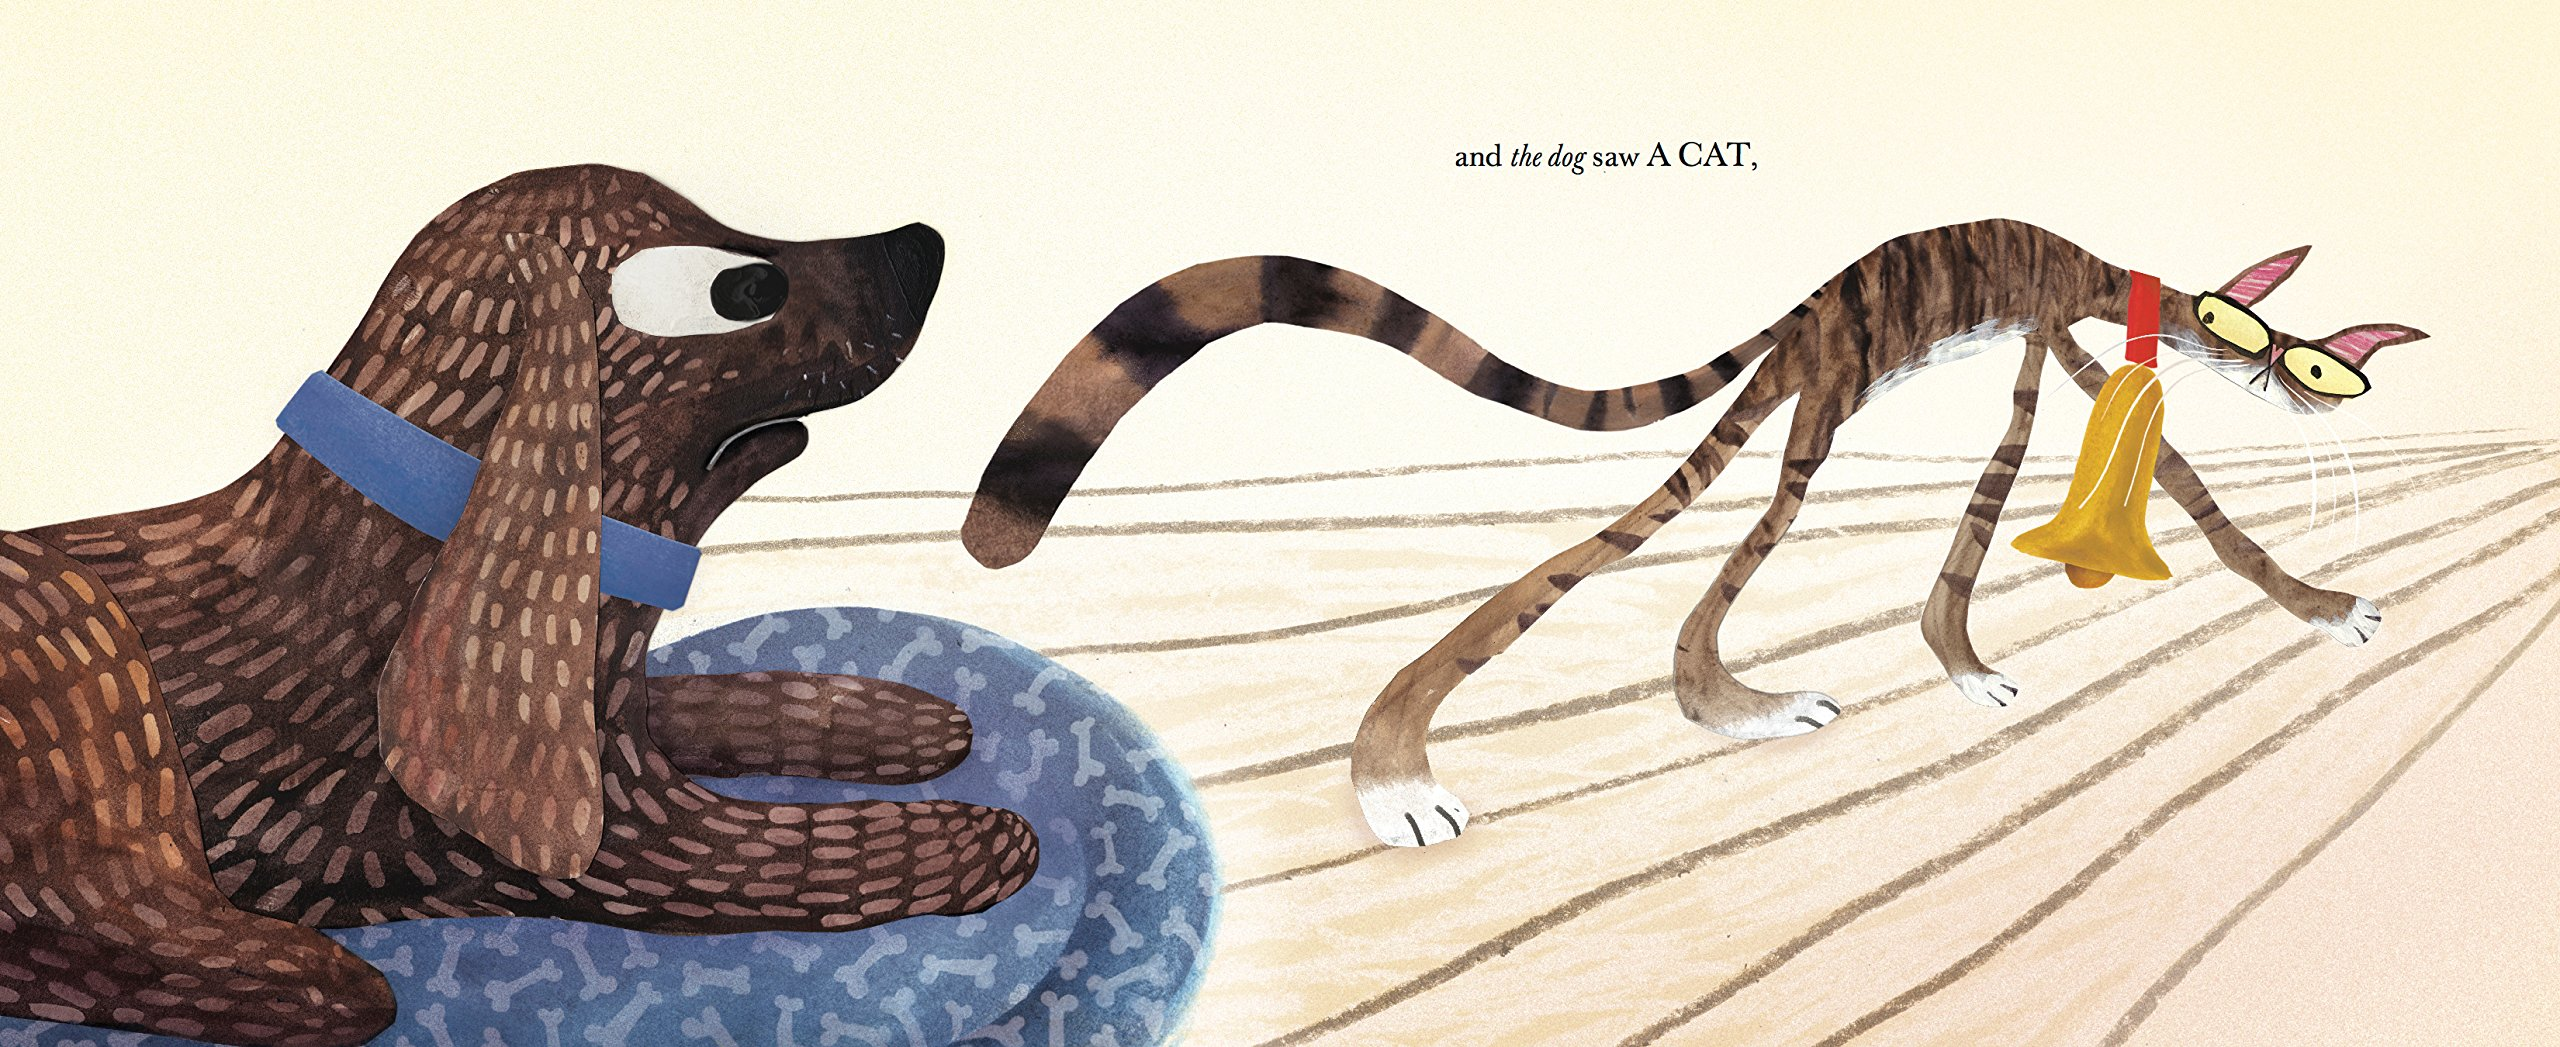 They All Saw a Cat by Chronicle Books (Image #9)